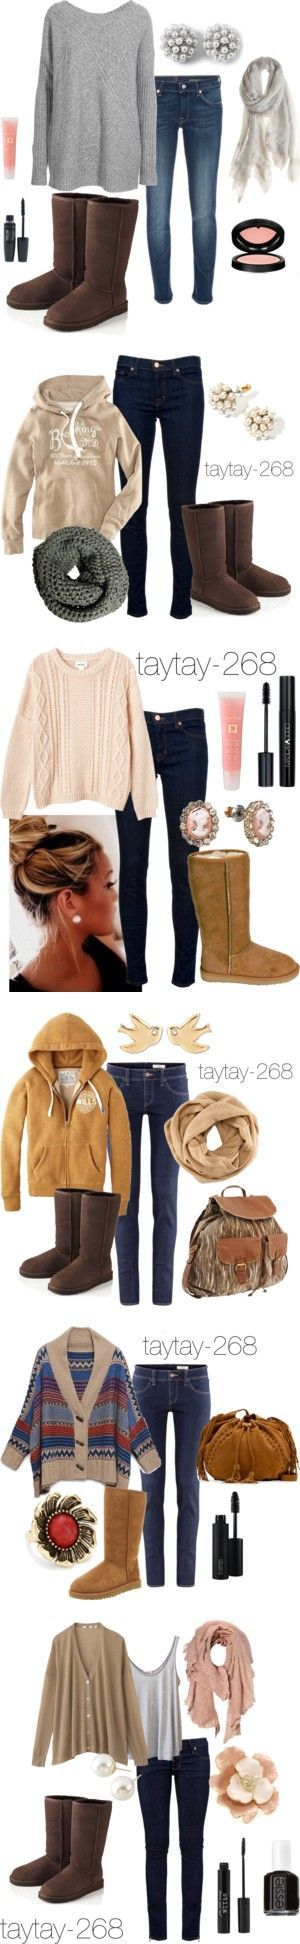 """Uggs Are Uhh-Mazing"" by taytay-268 on Polyvore"